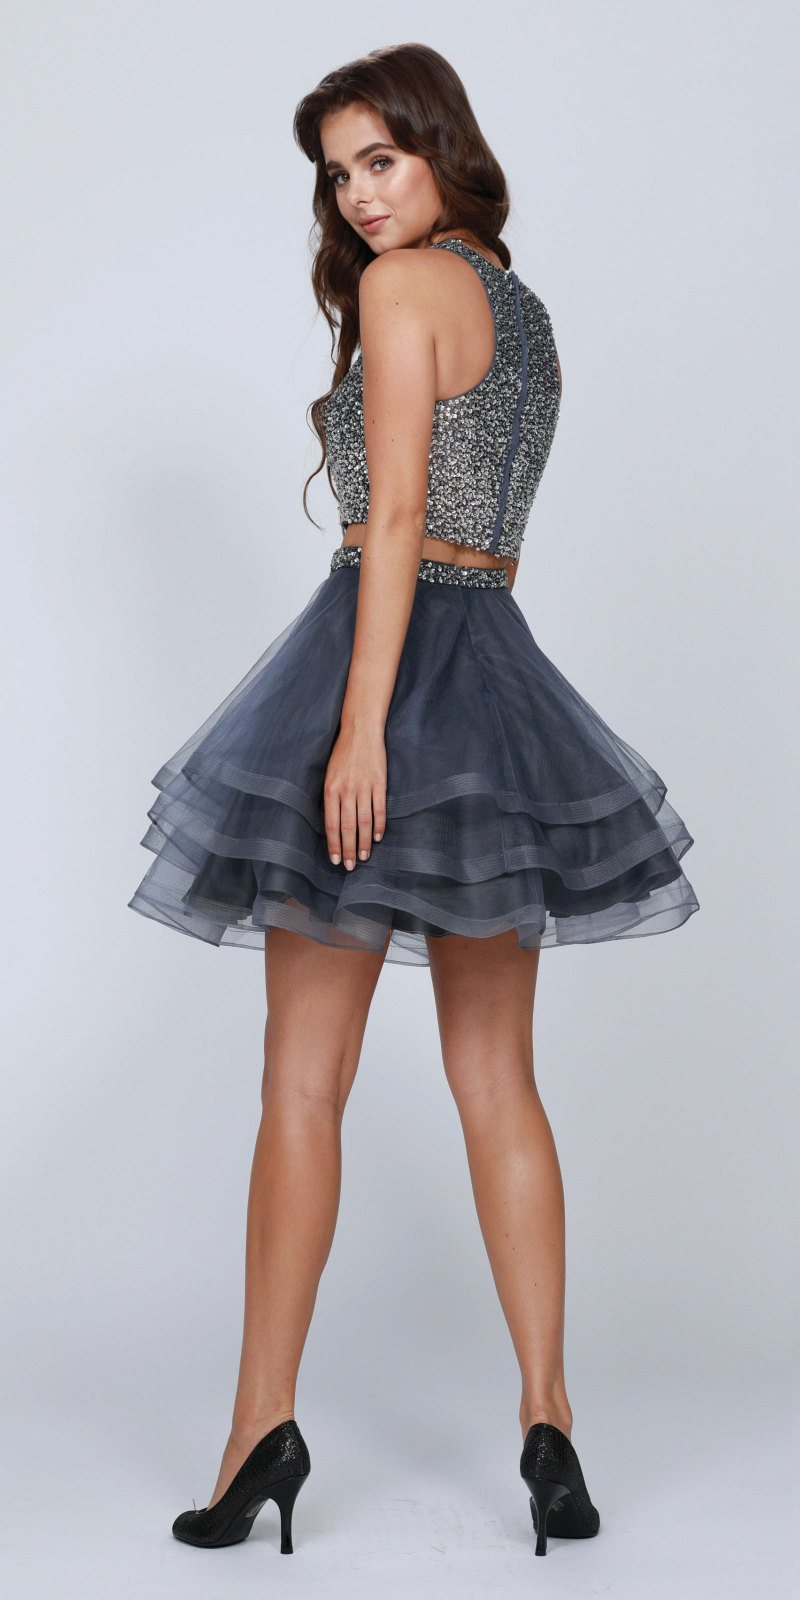 1cd6d77c670 ... Two-Piece Short Prom Dress Sleeveless Beaded Crop Top Charcoal ...